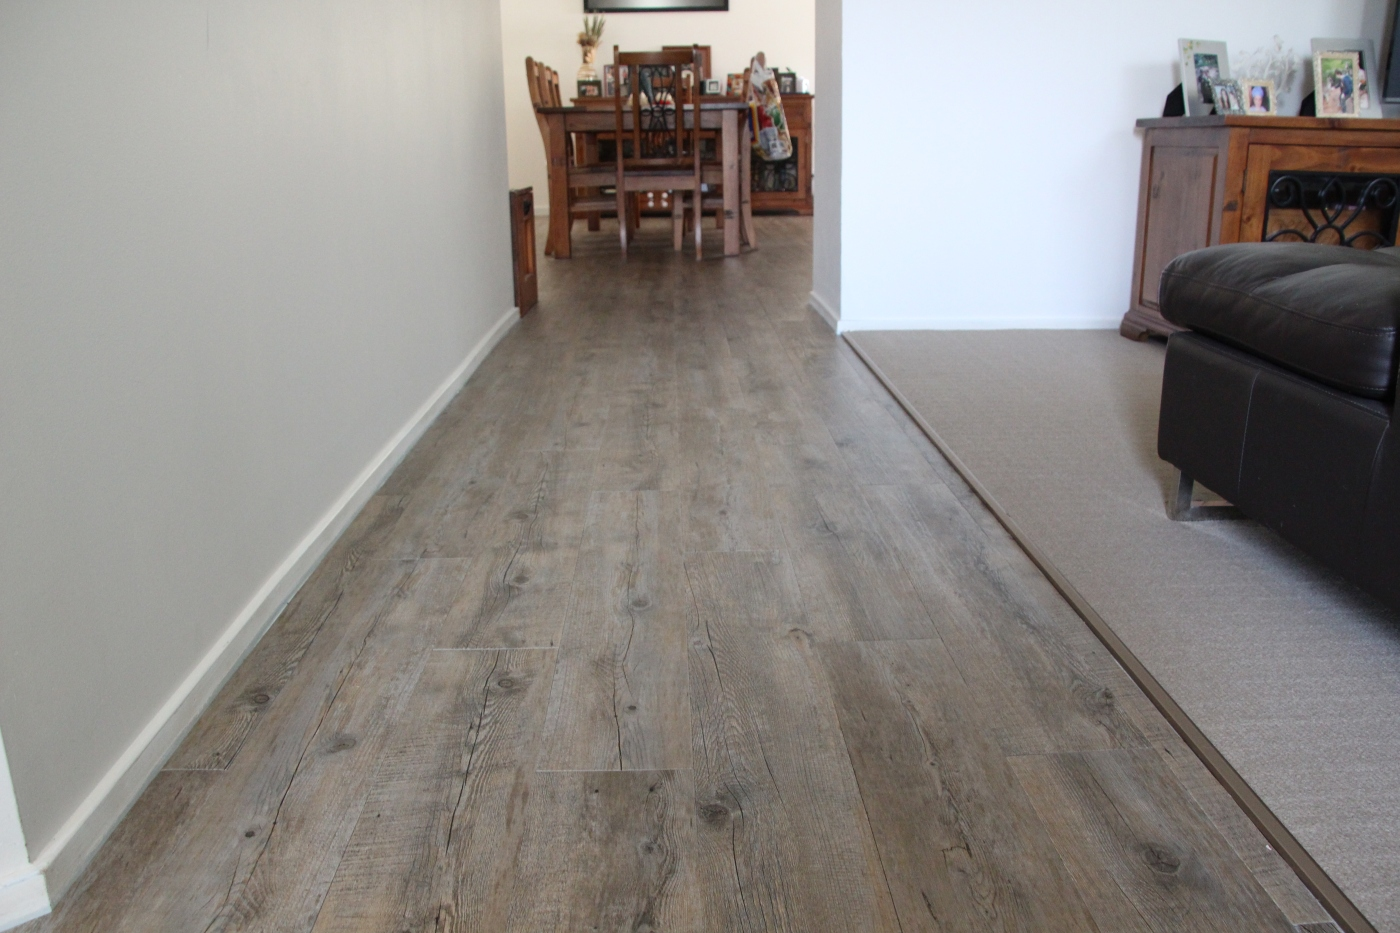 Affordable gerflor self adhesive vinyl tile flooring frugalable gerflor vinyl flooring is so easy to install on a concrete slab is quiet underfoot and has a nice texture i had my husband change the blade on my stanley dailygadgetfo Image collections